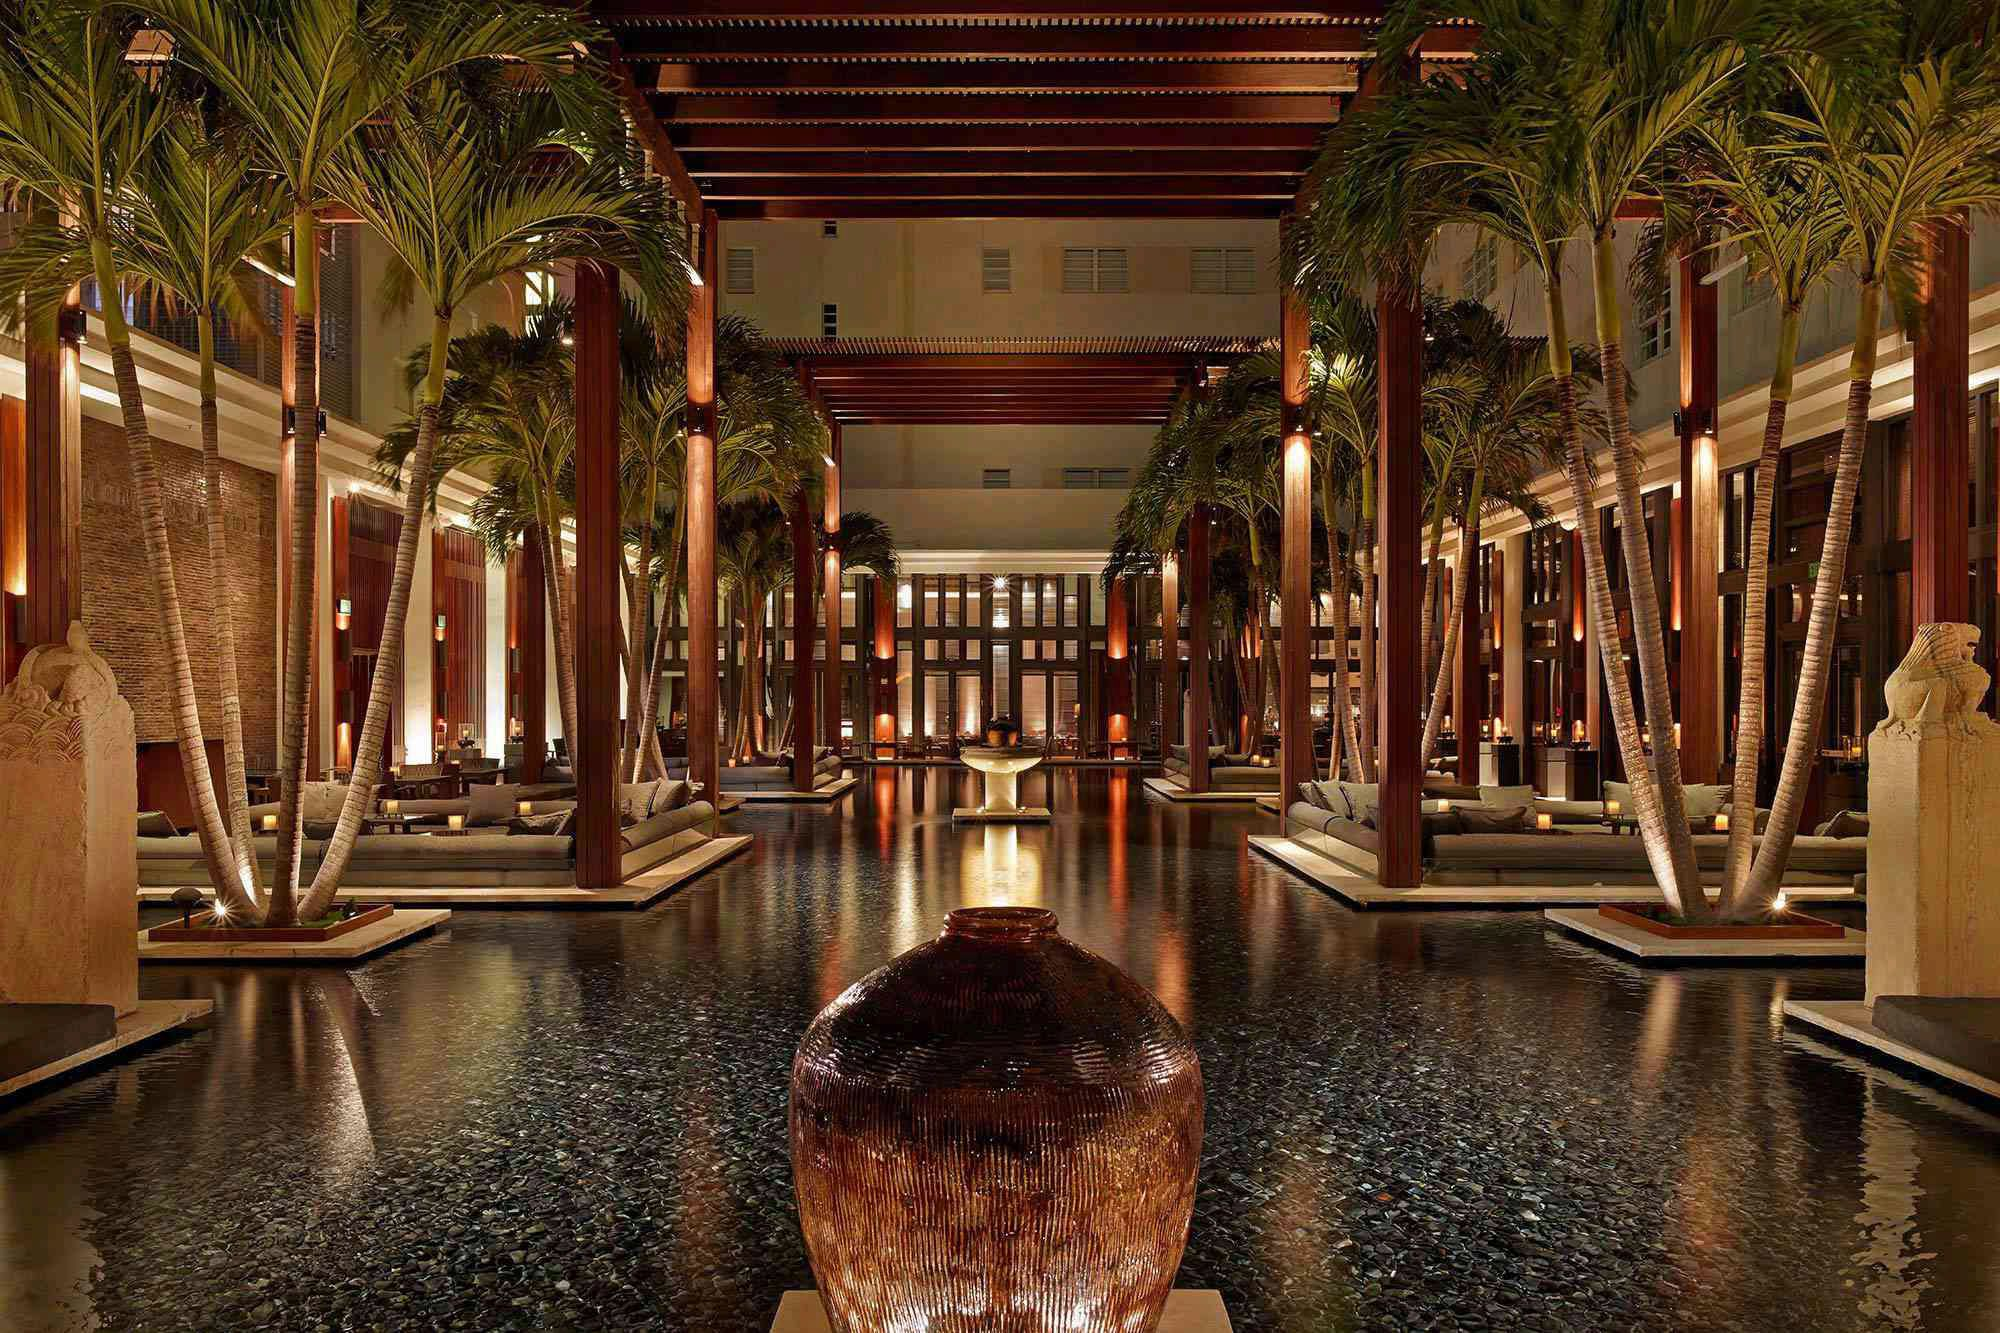 Outdoor seating area at The Setai